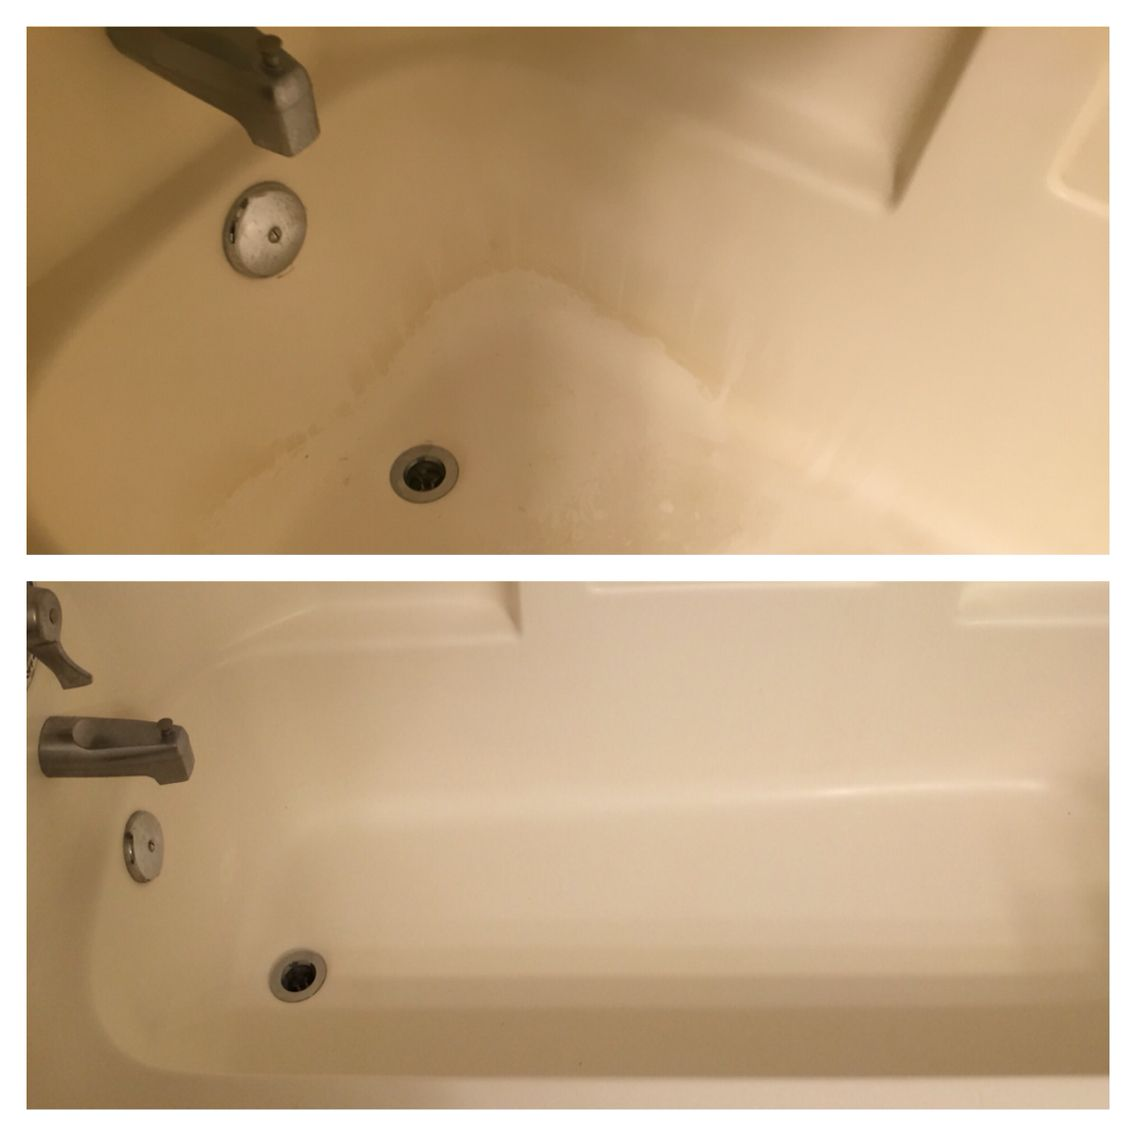 Used Kaboom Shower, Tub And Tile With Oxi To Clean This Soap Scum Tub.